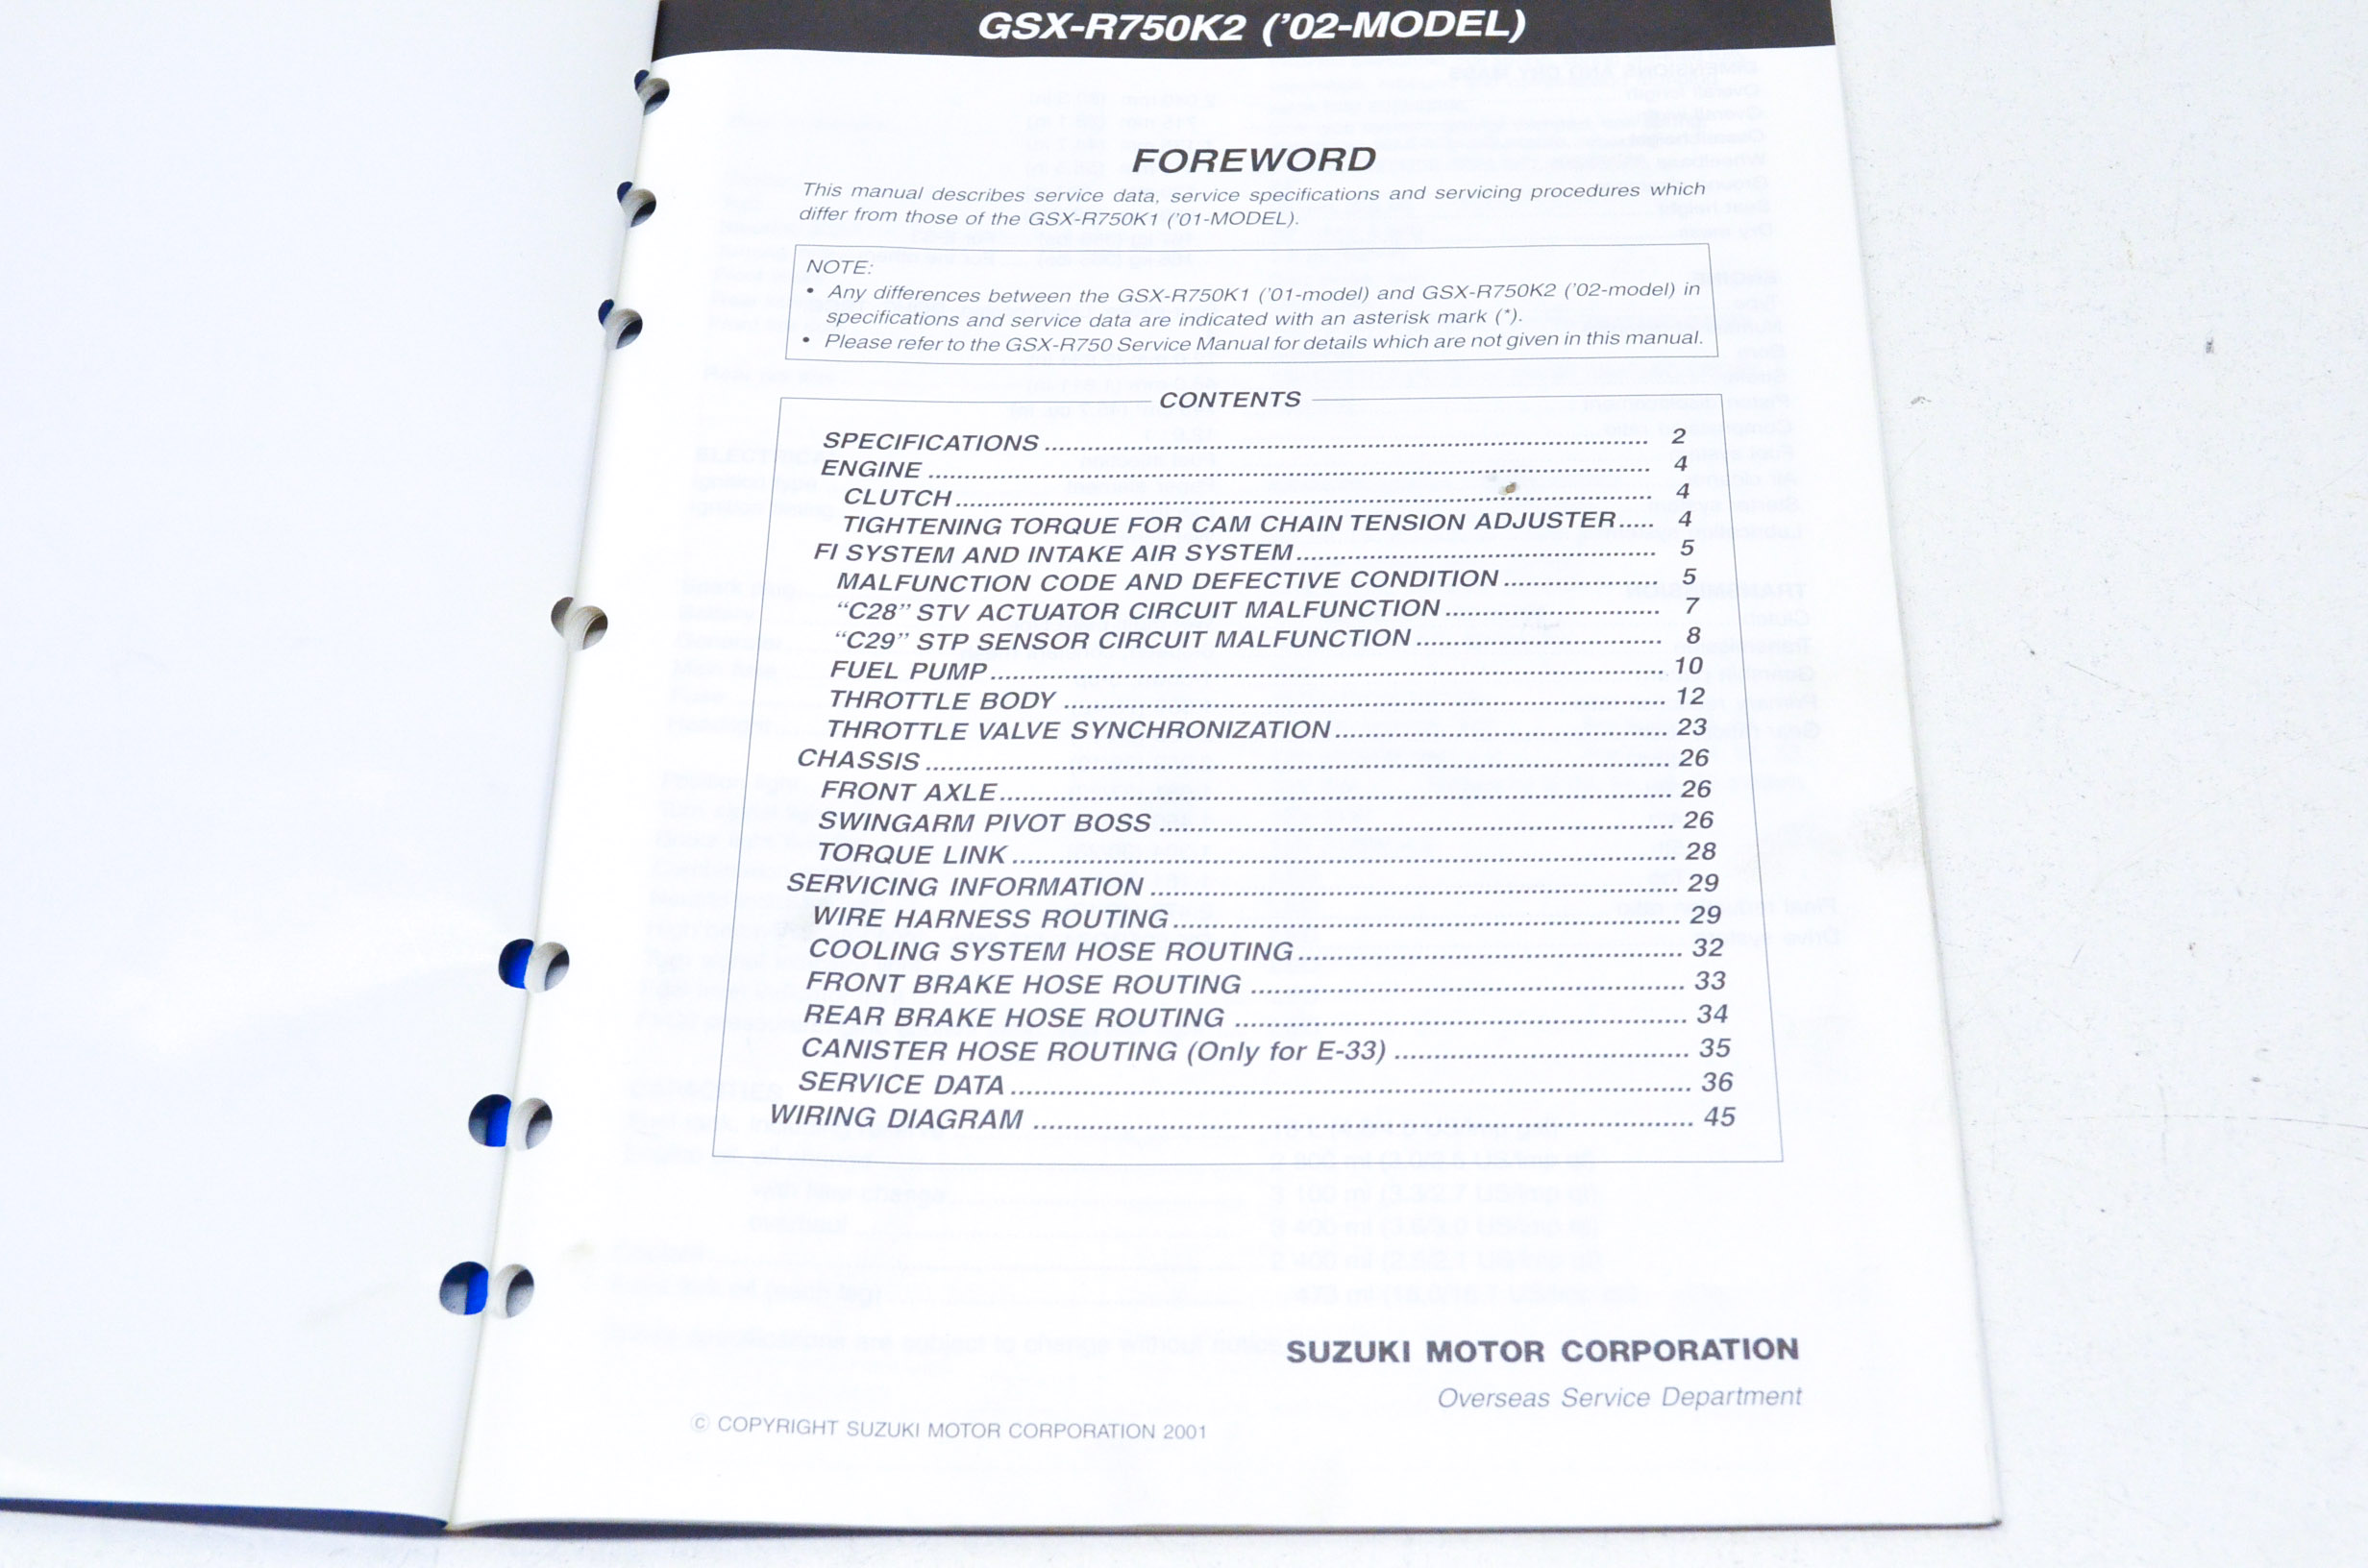 OEM Suzuki 99501-37210-03E Supplementary Service Manual